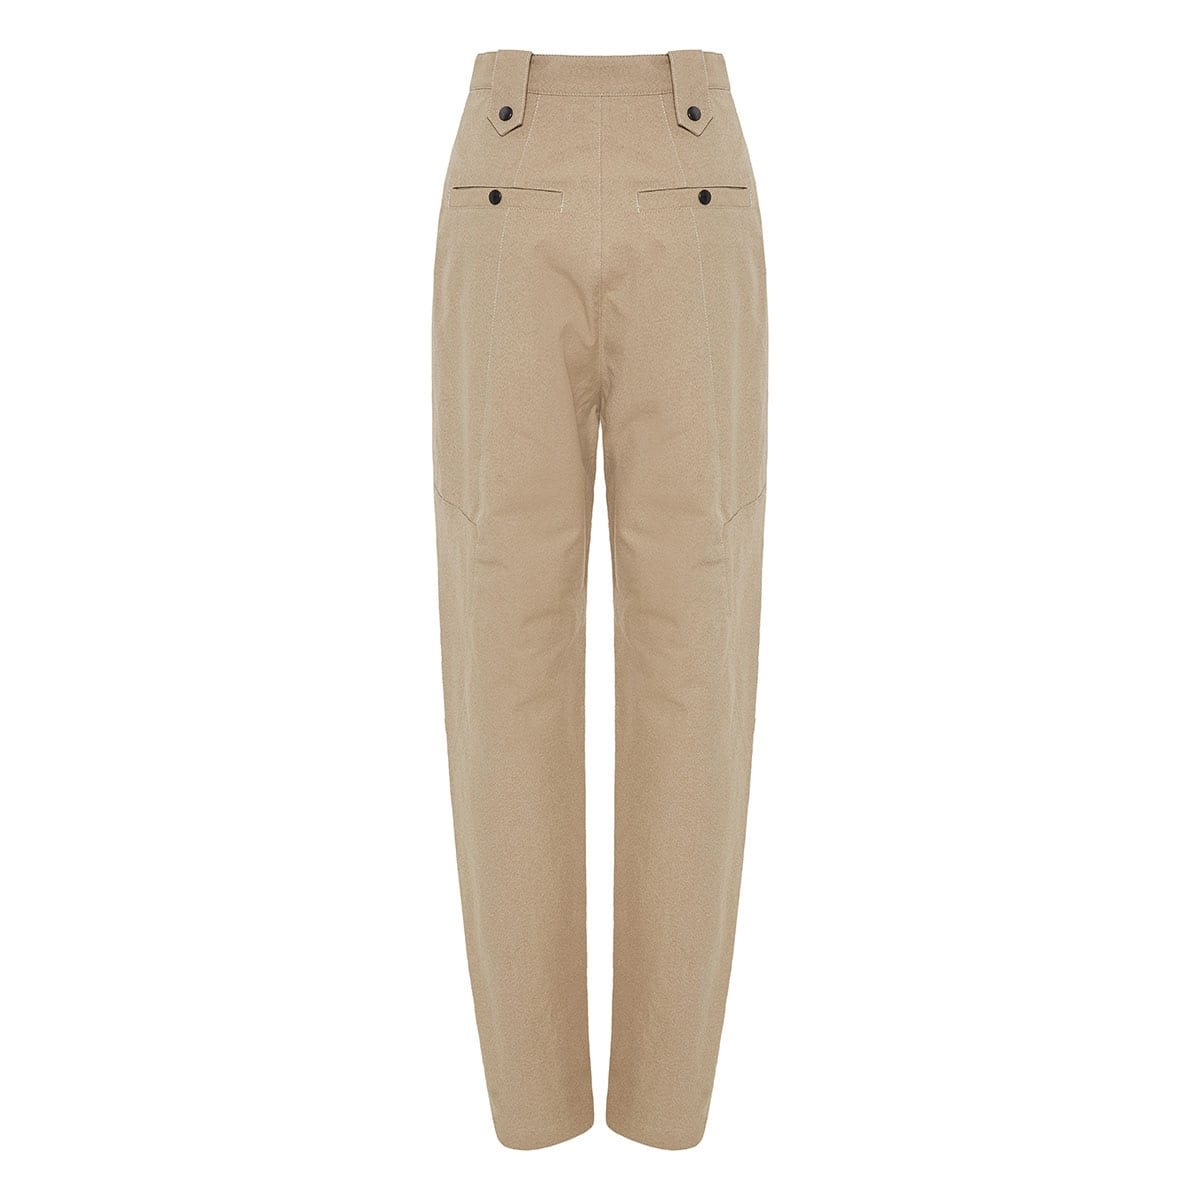 Yerris high-waist cotton trousers